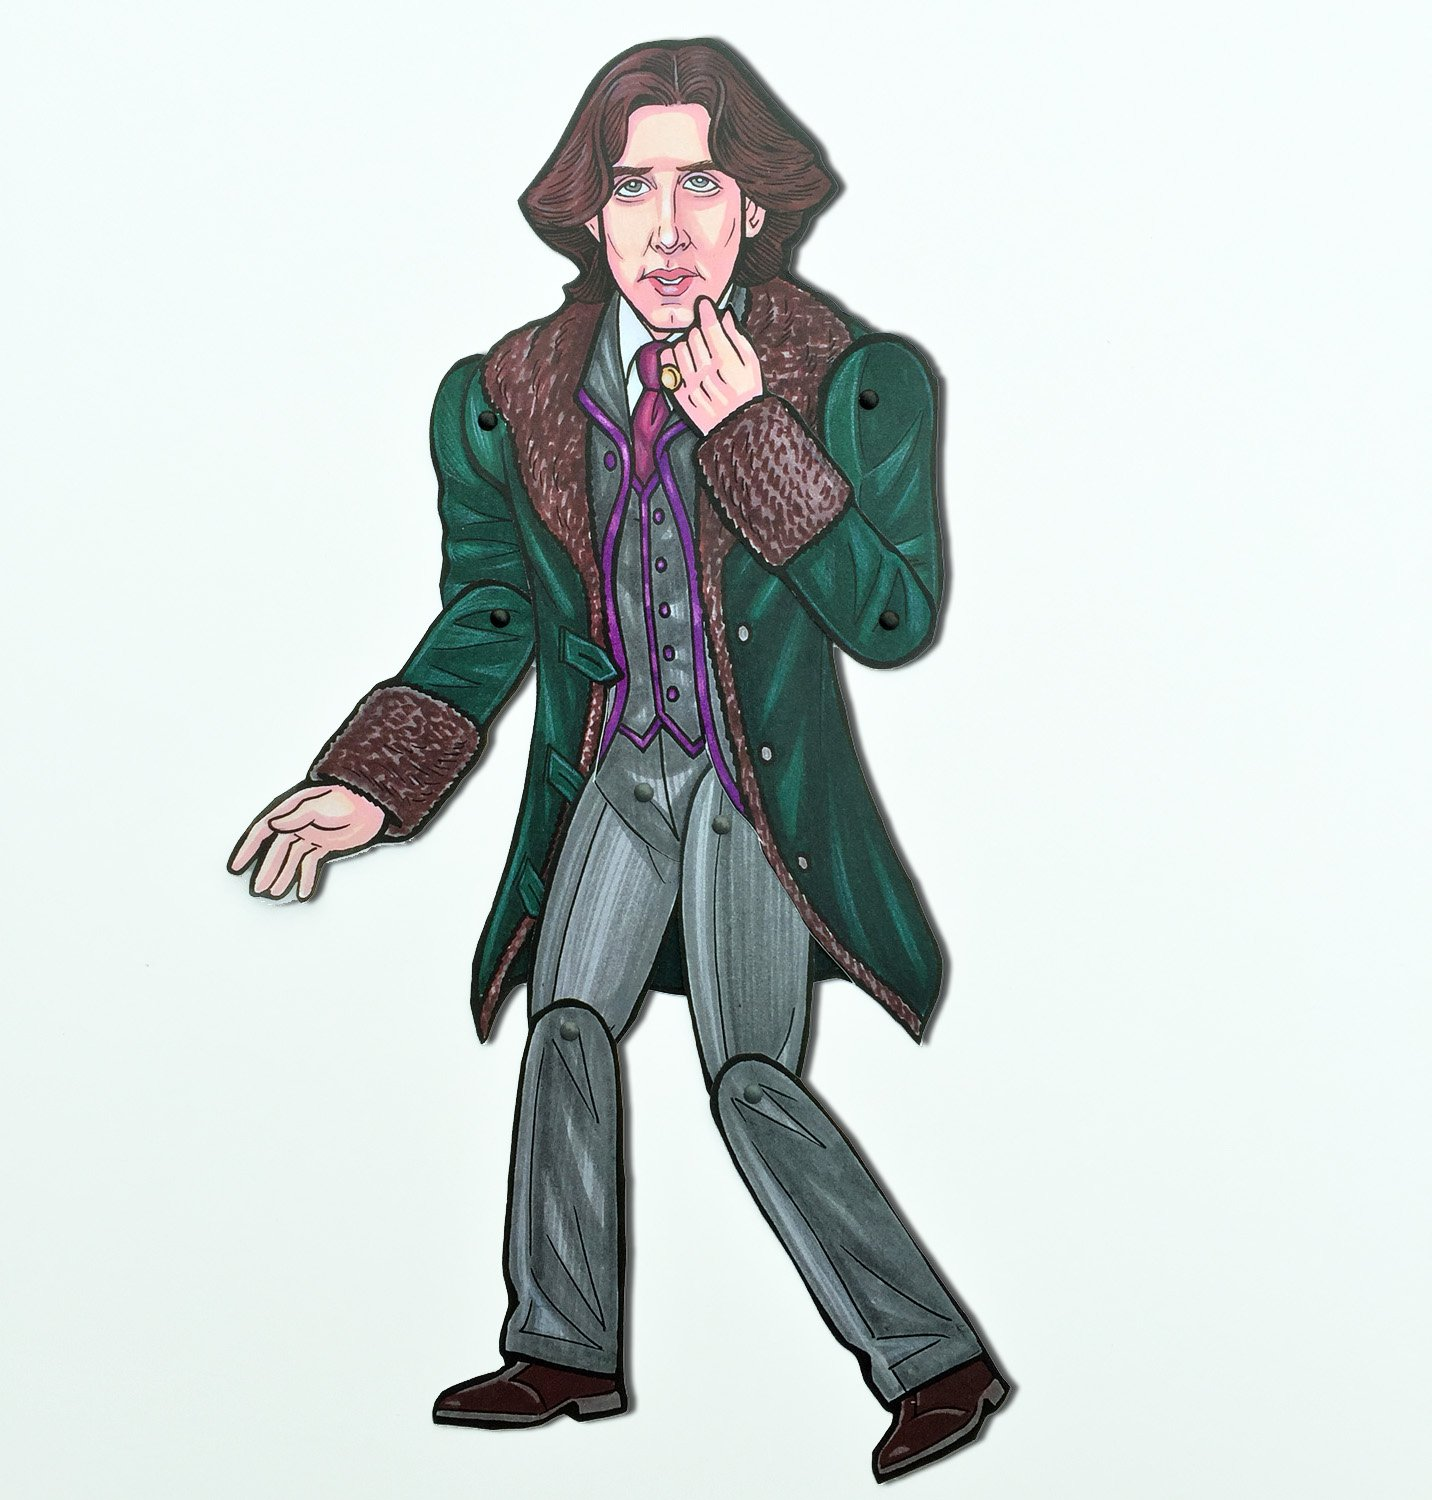 Oscar Wilde Jointed Art Print Articulated Paper Doll by Ardently Crafted